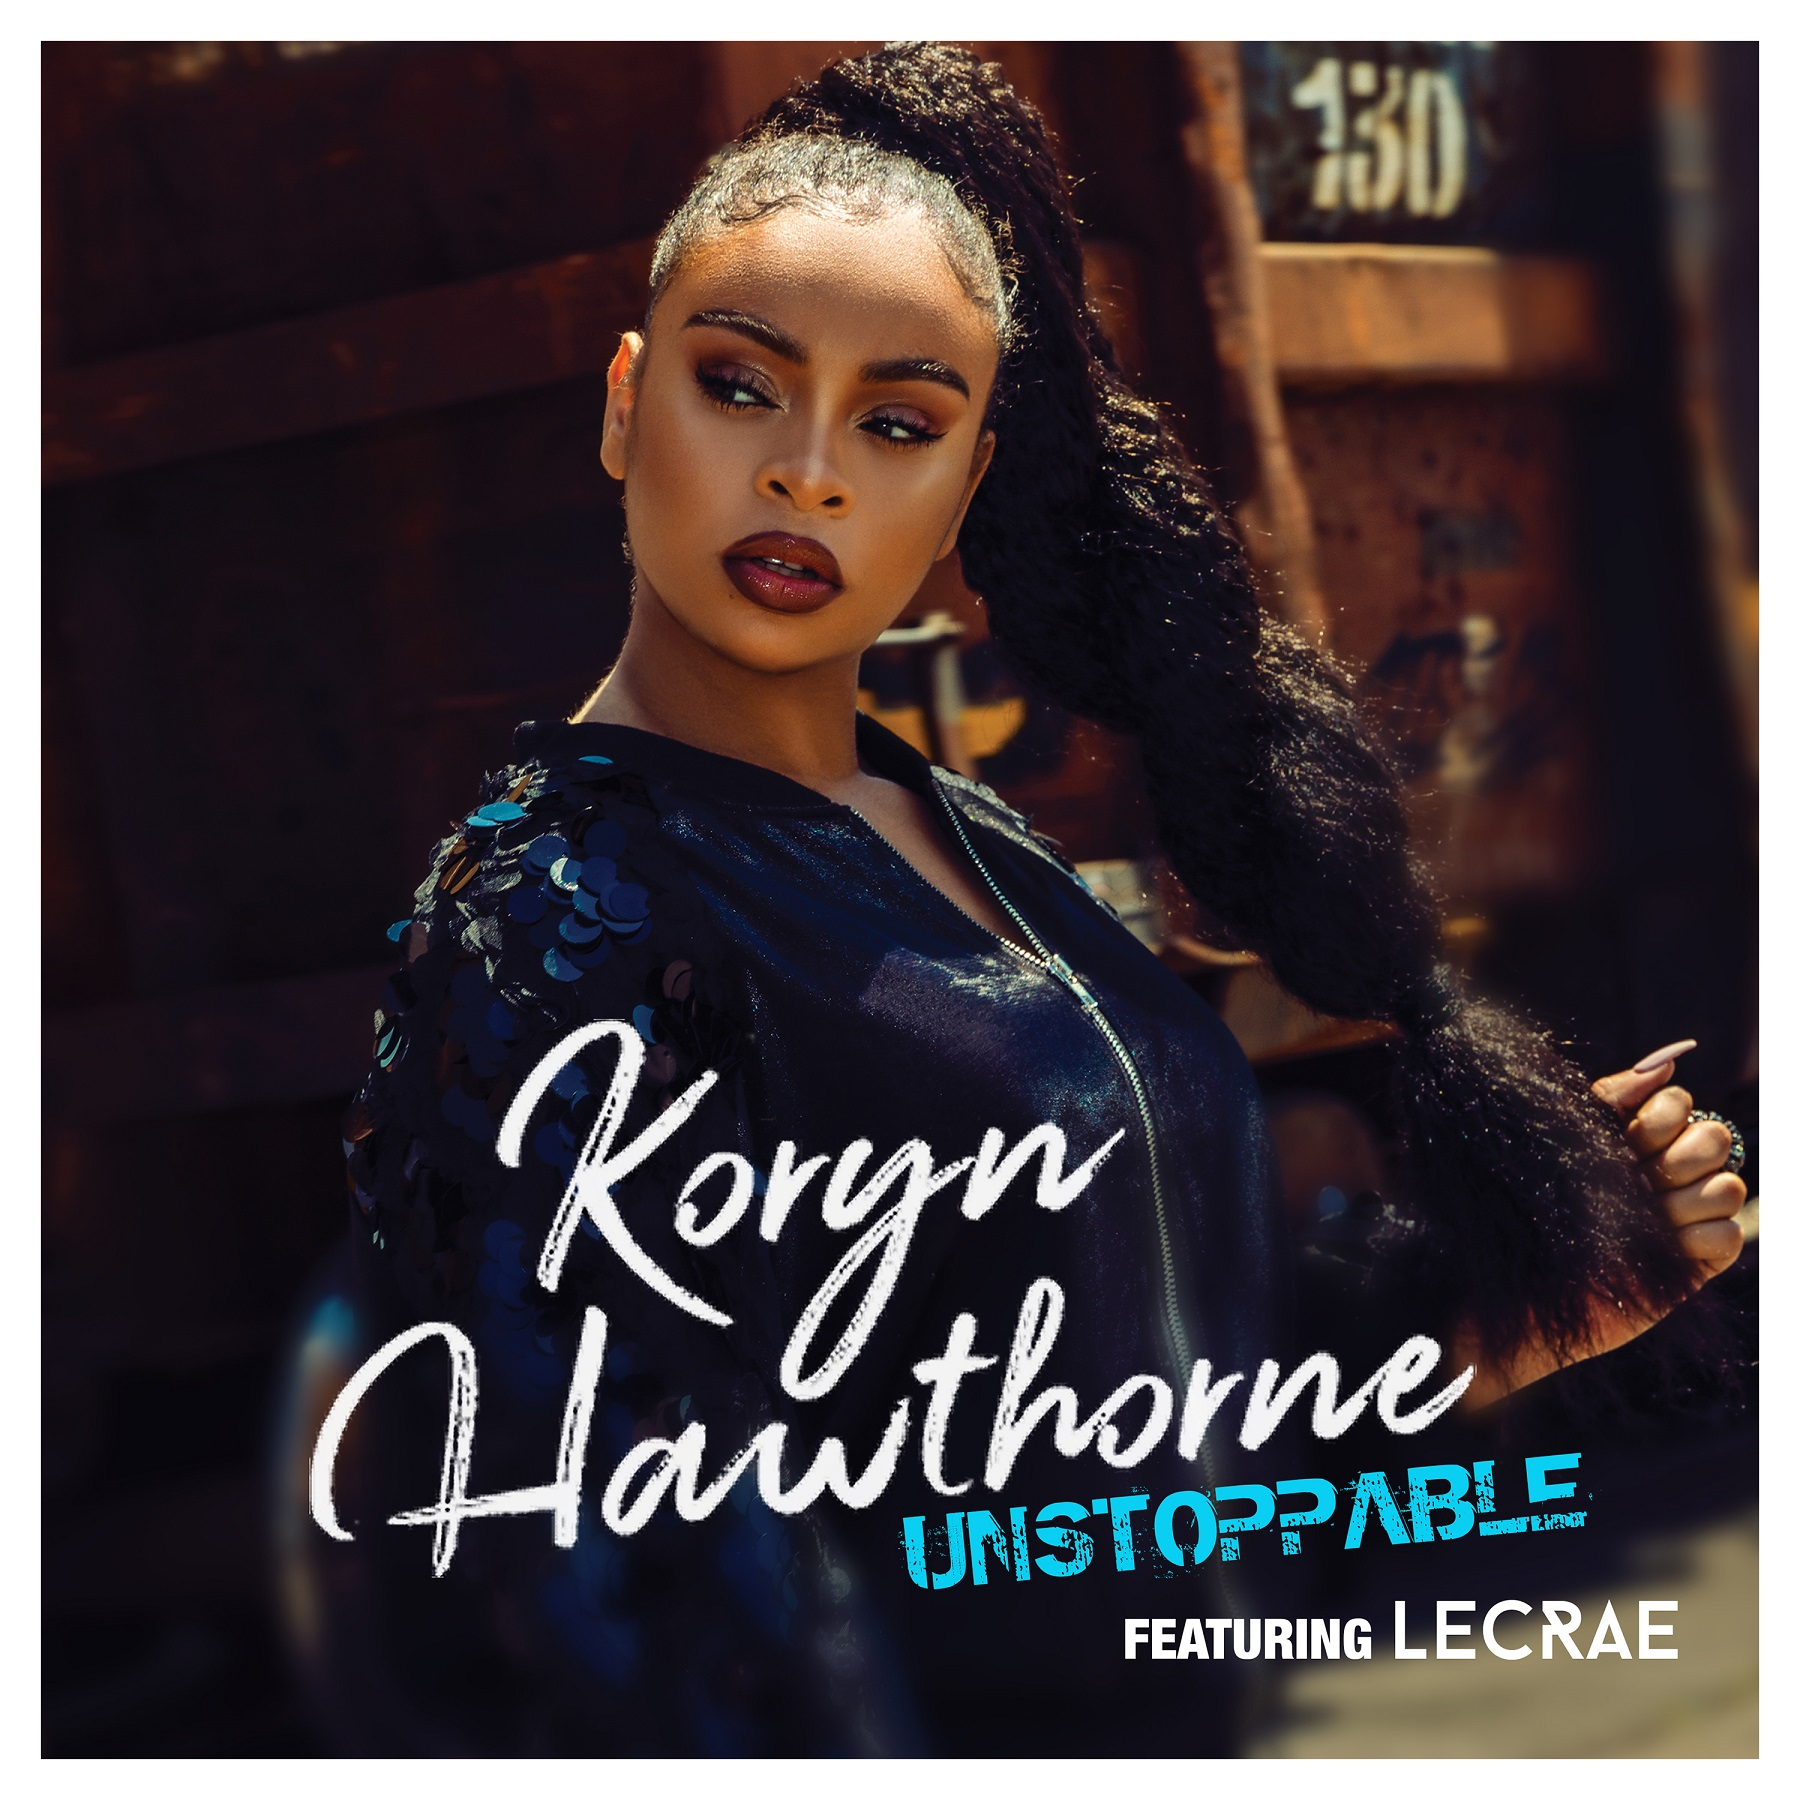 Catch Grammy-Nominated #1 Artist Koryn Hawthorne, Lecrae, single